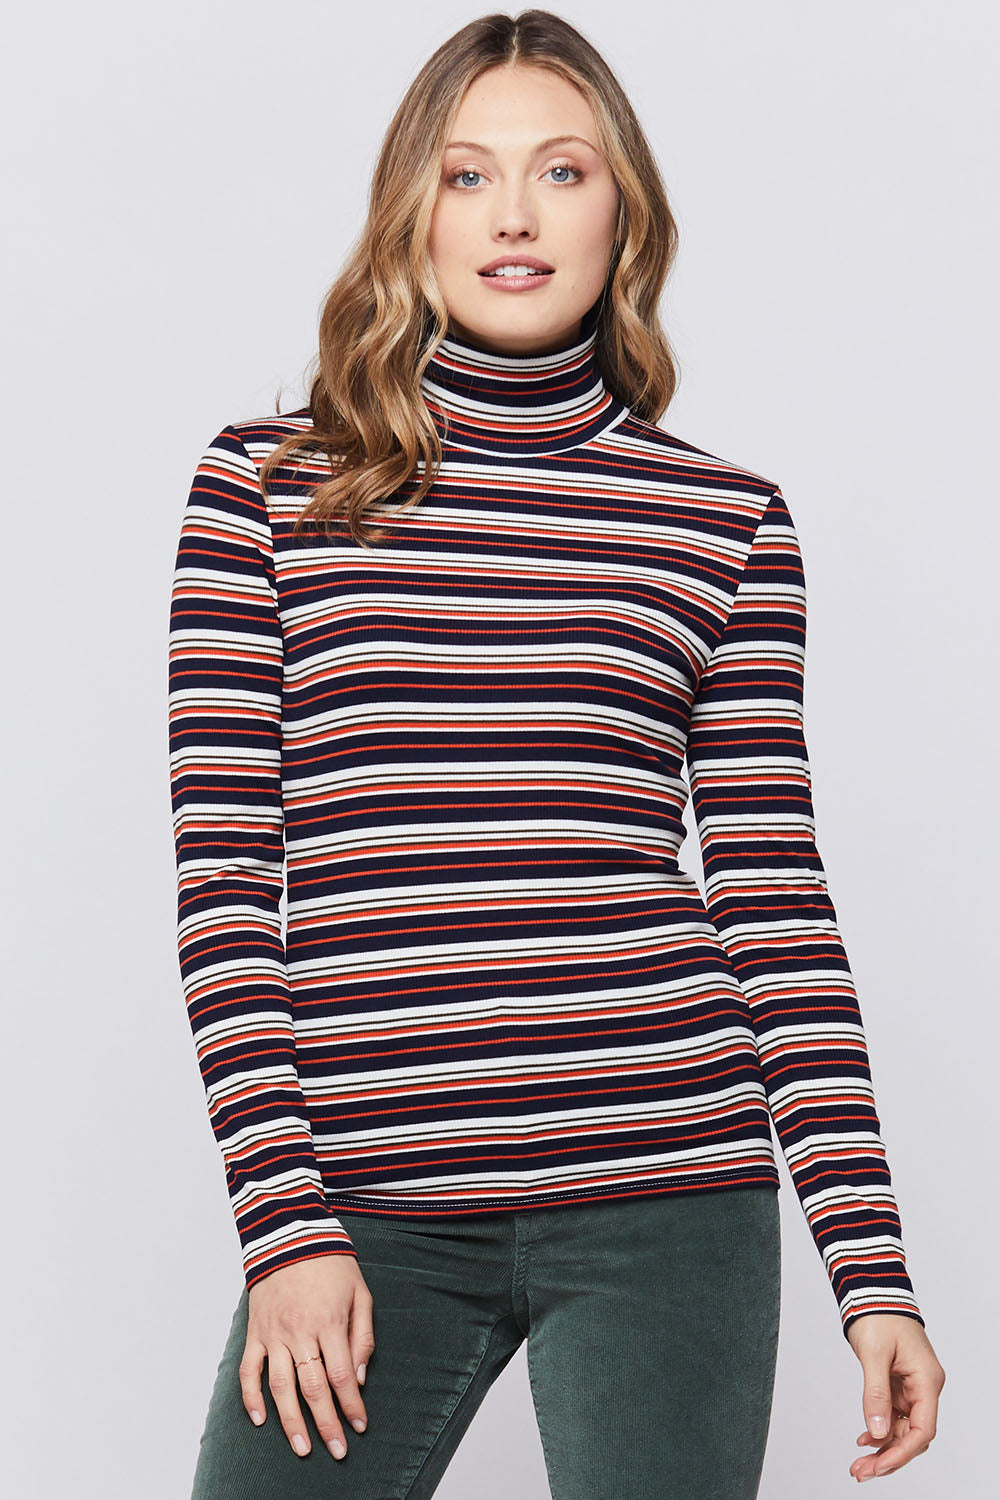 Sadona Ribbed Turtleneck - Jori & June